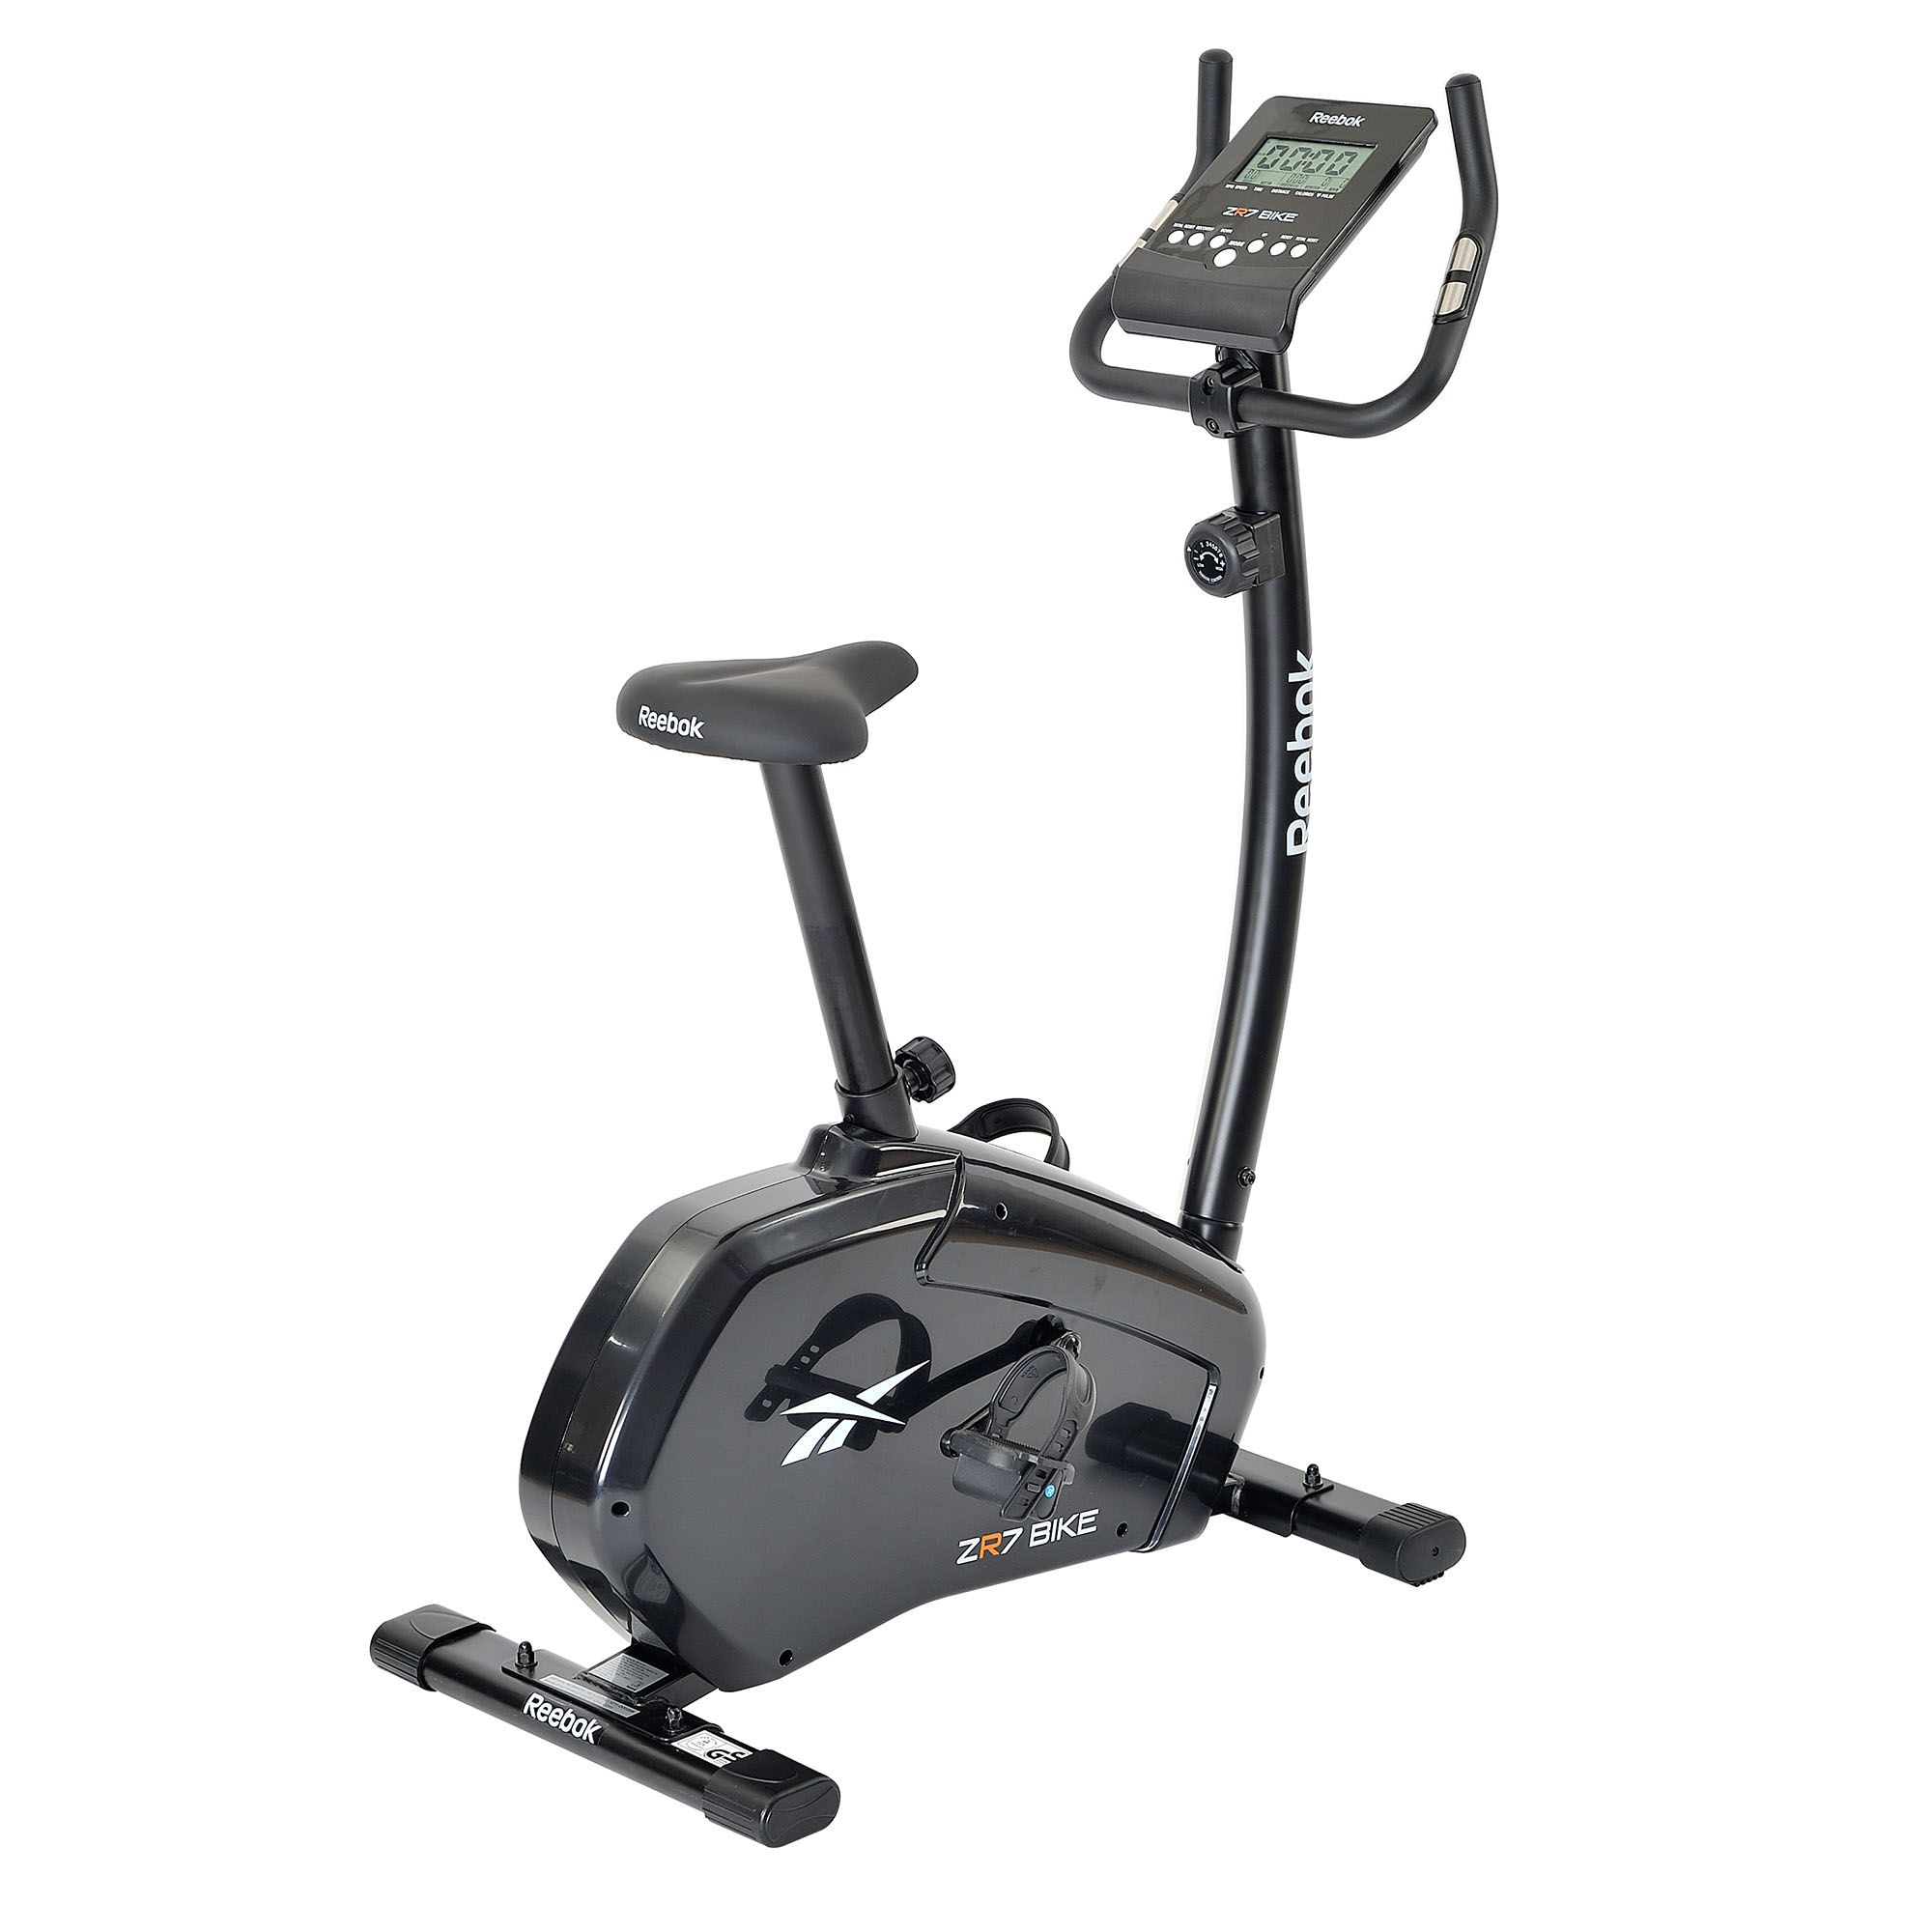 Good Quality Exercise Bikes For Home Use